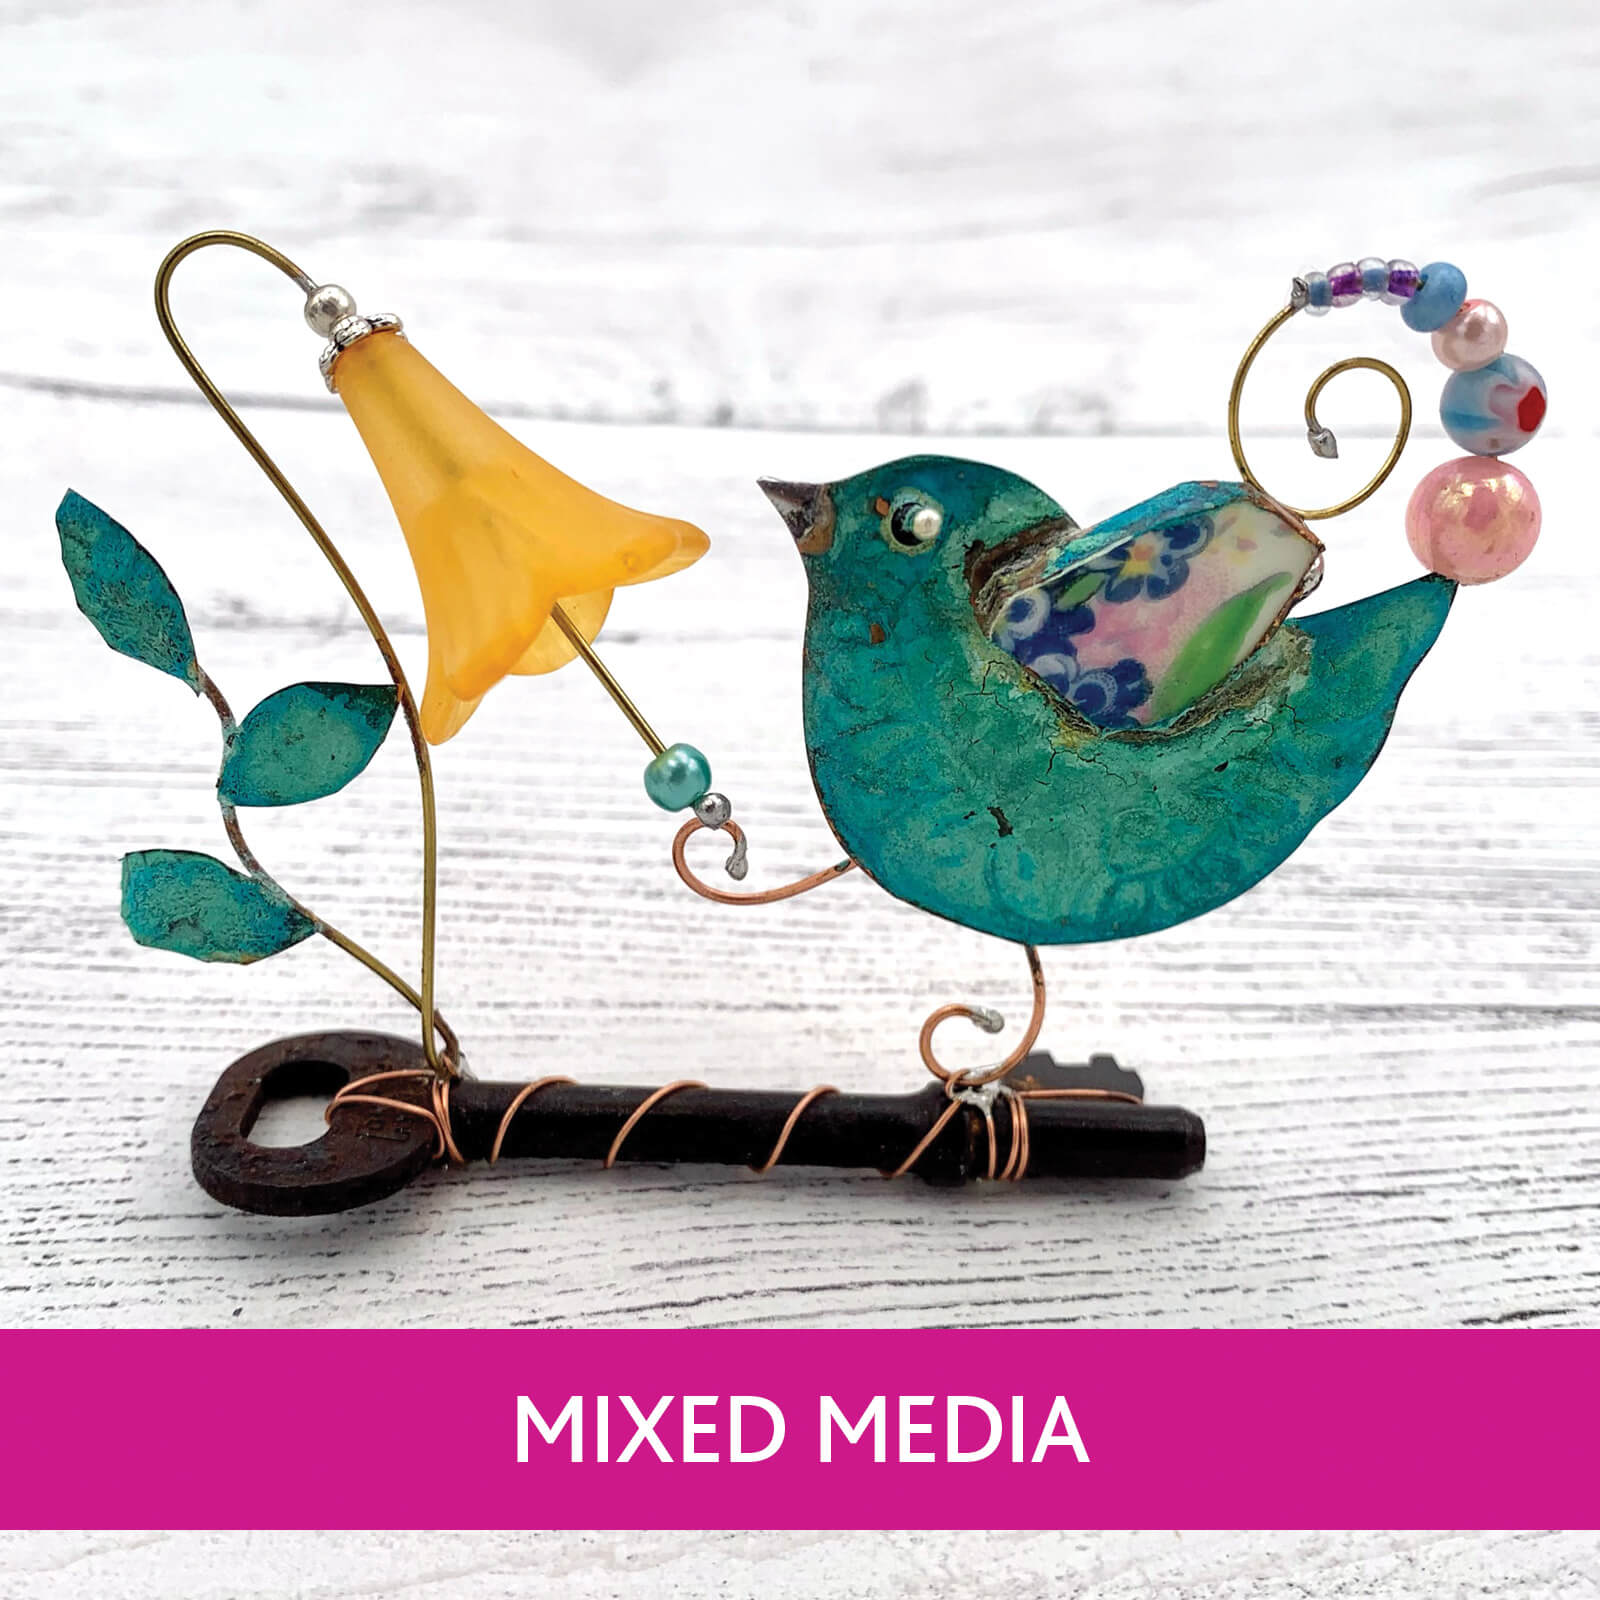 Hand crafted Mixed Media collection from Ferrers Gallery